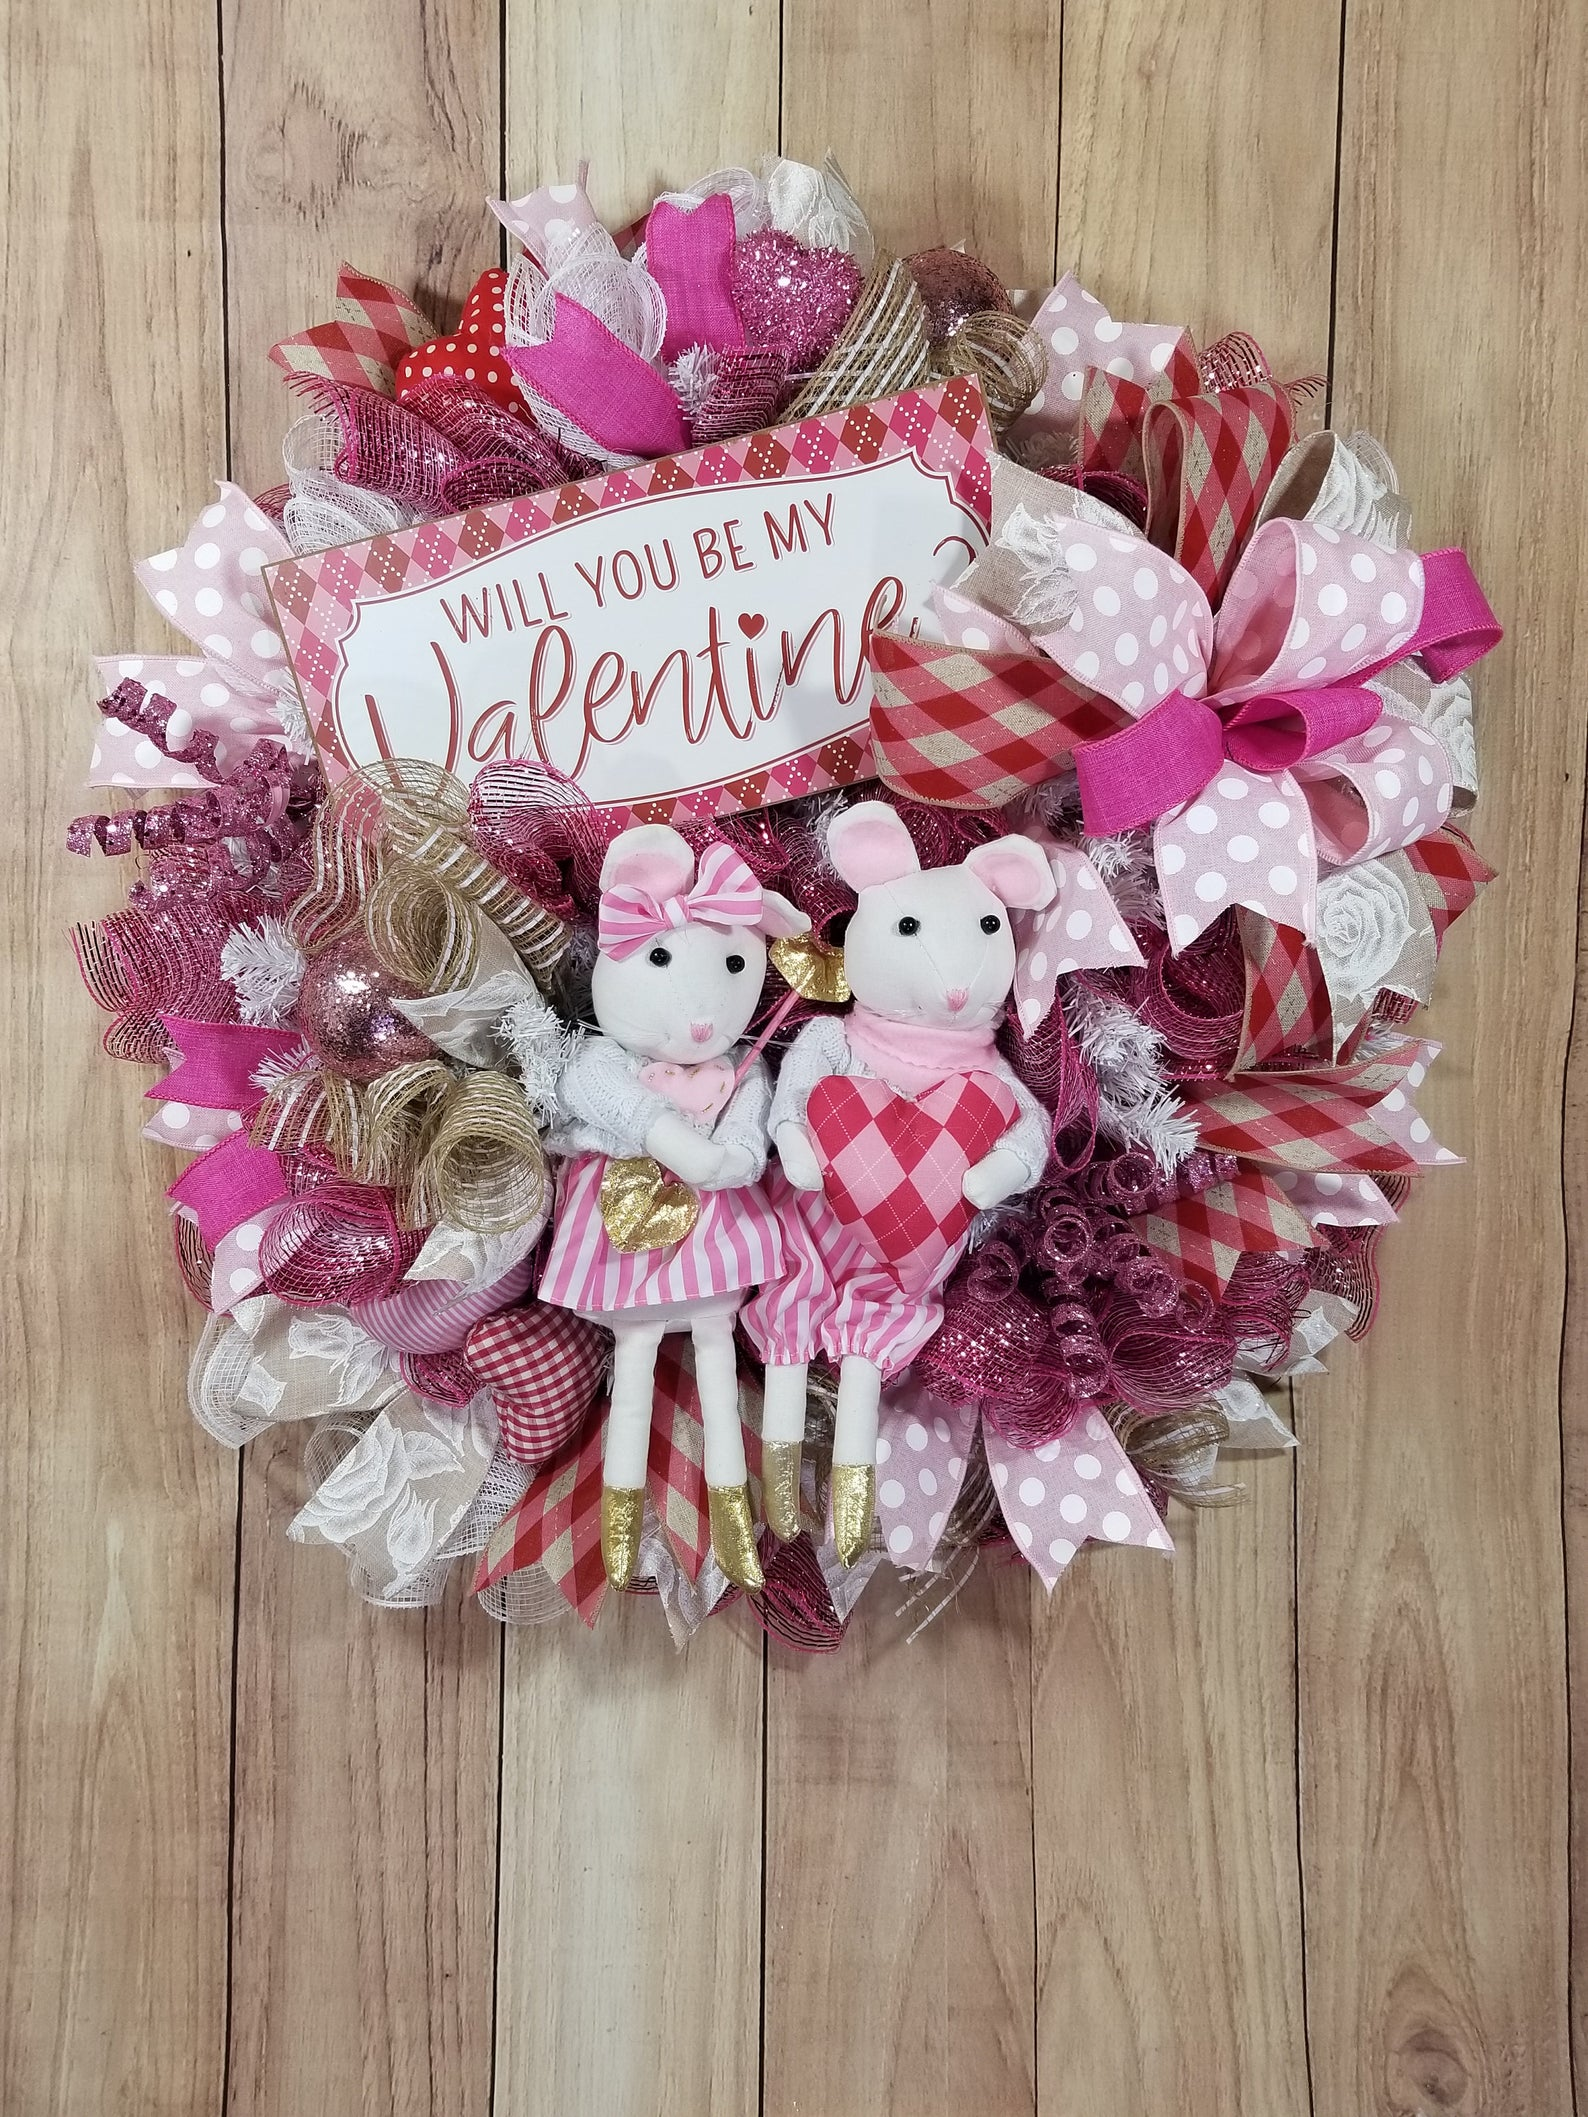 Cute pink decorative knitted Valentine's wreaths